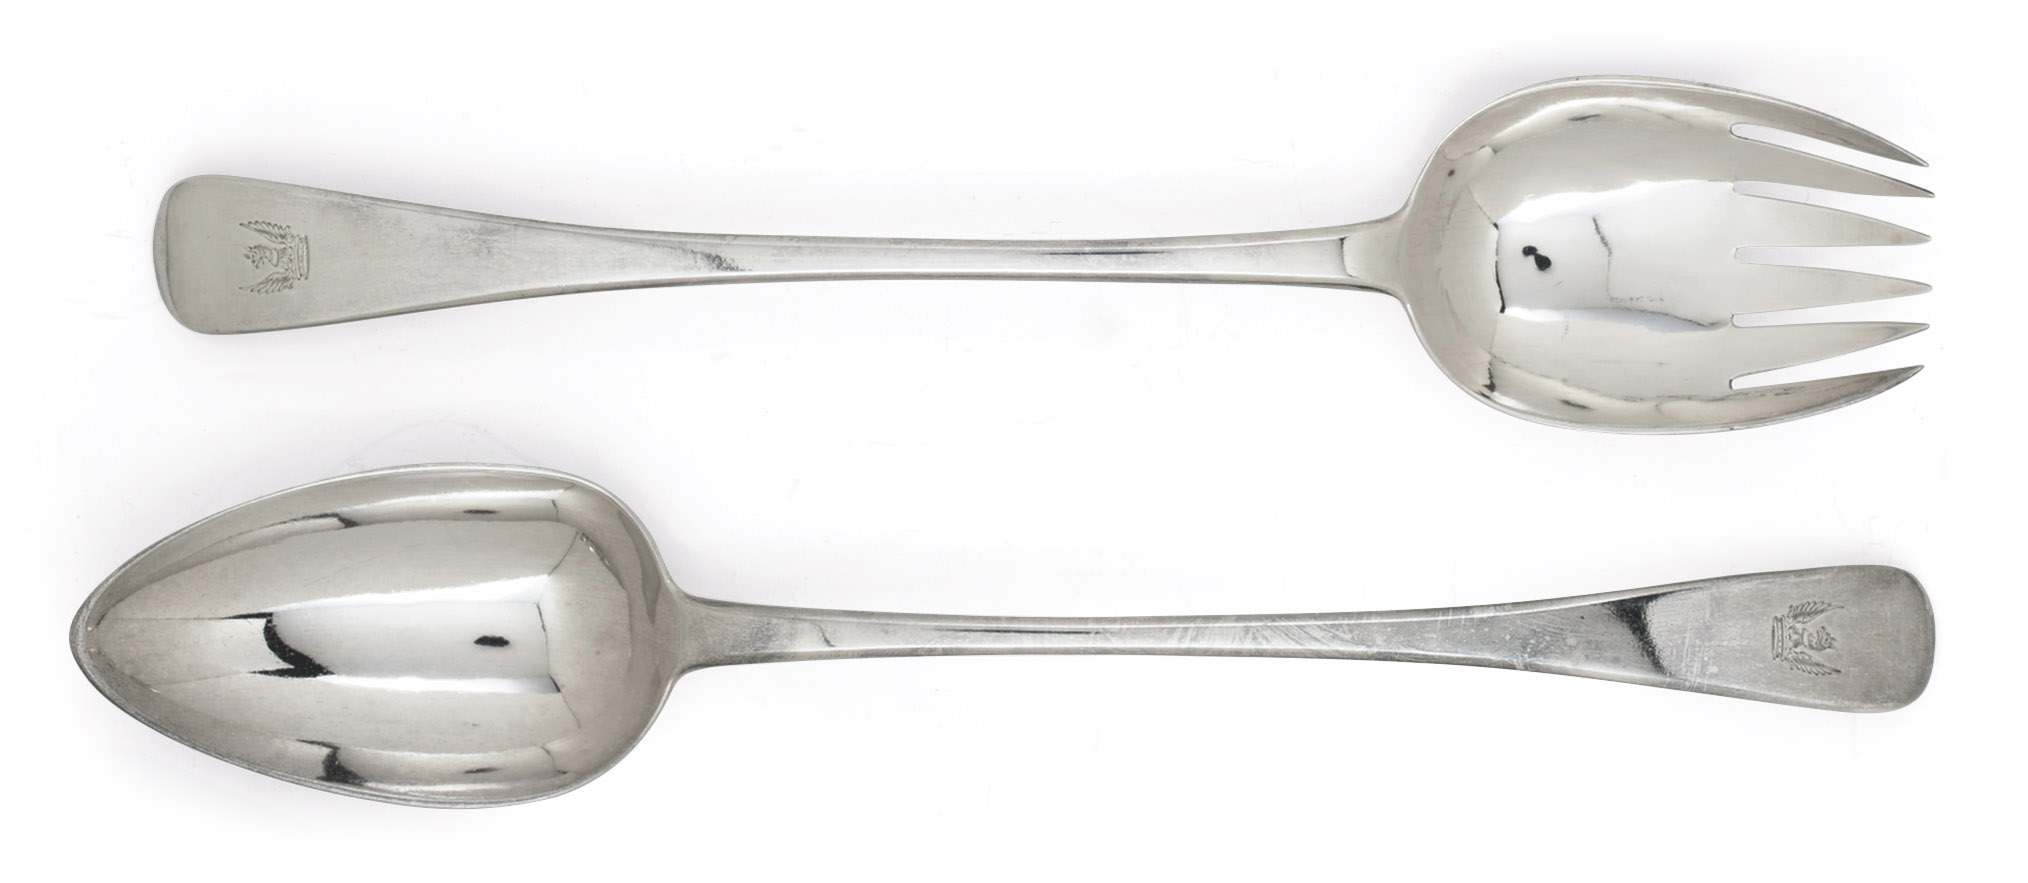 A PAIR OF GEORGE III SILVER SALAD-SERVERS